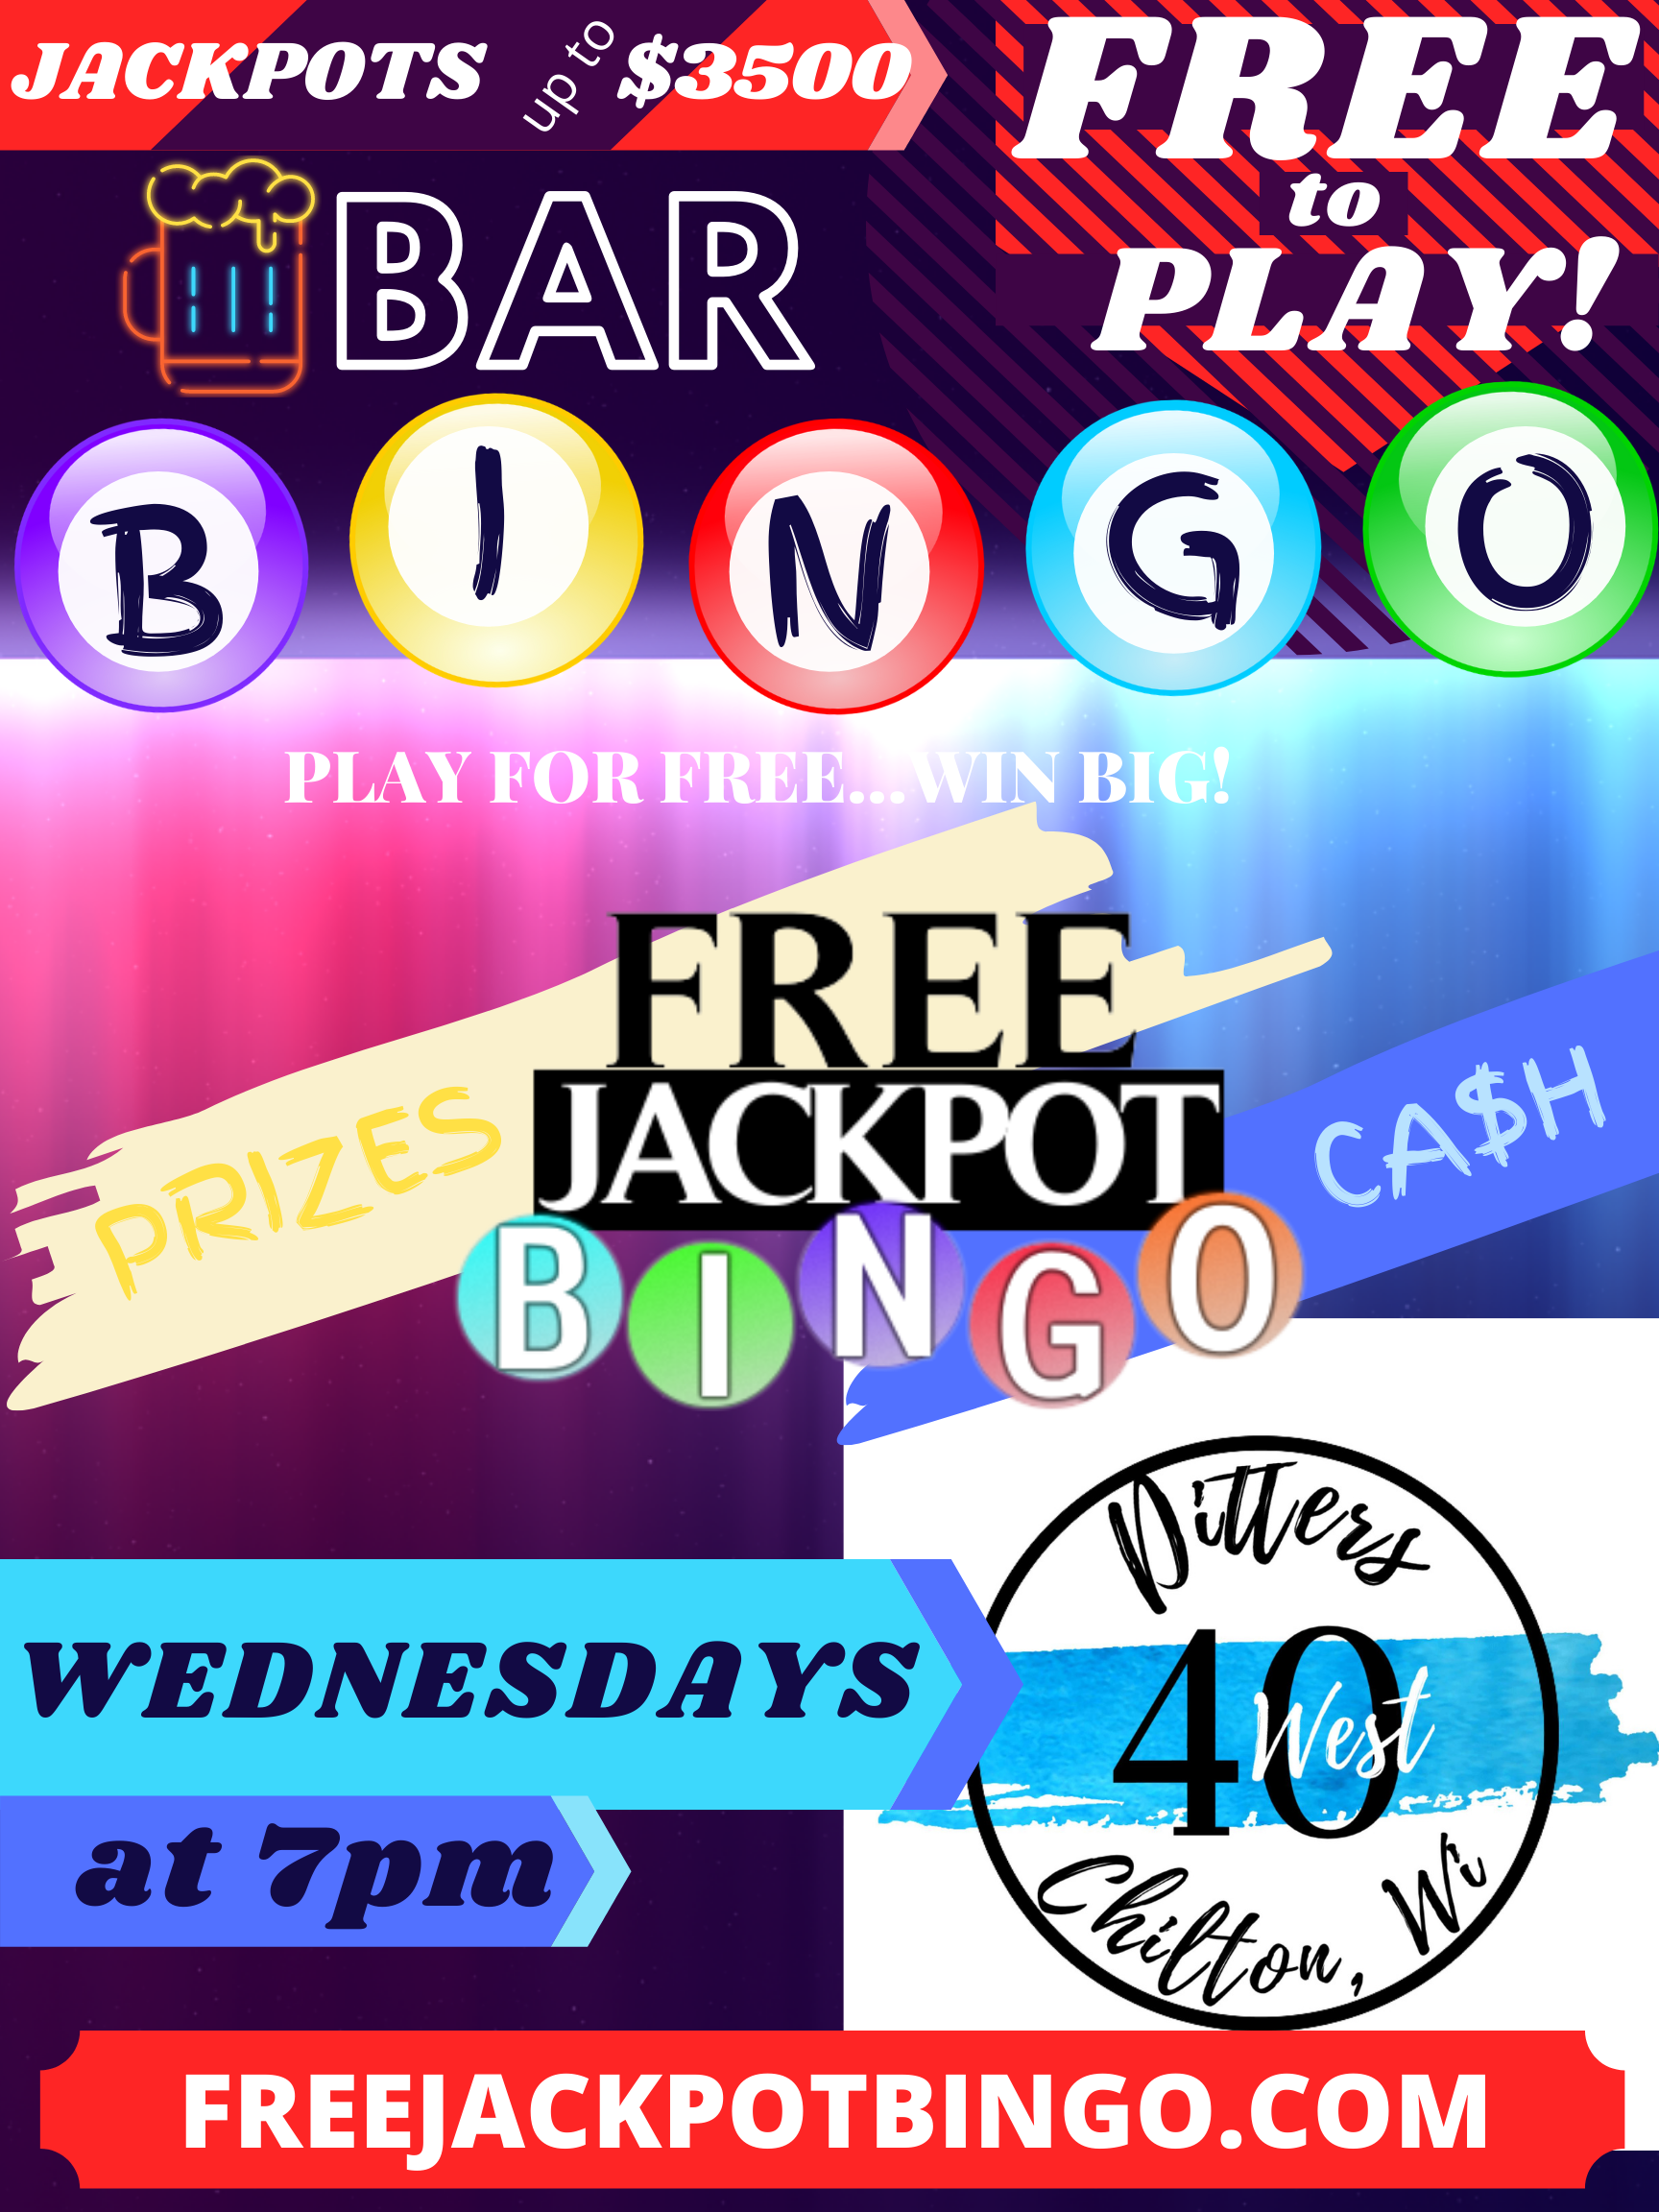 THURSDAY Free To Play Gameshow Bingo at The Reef – 5:30PM CDT